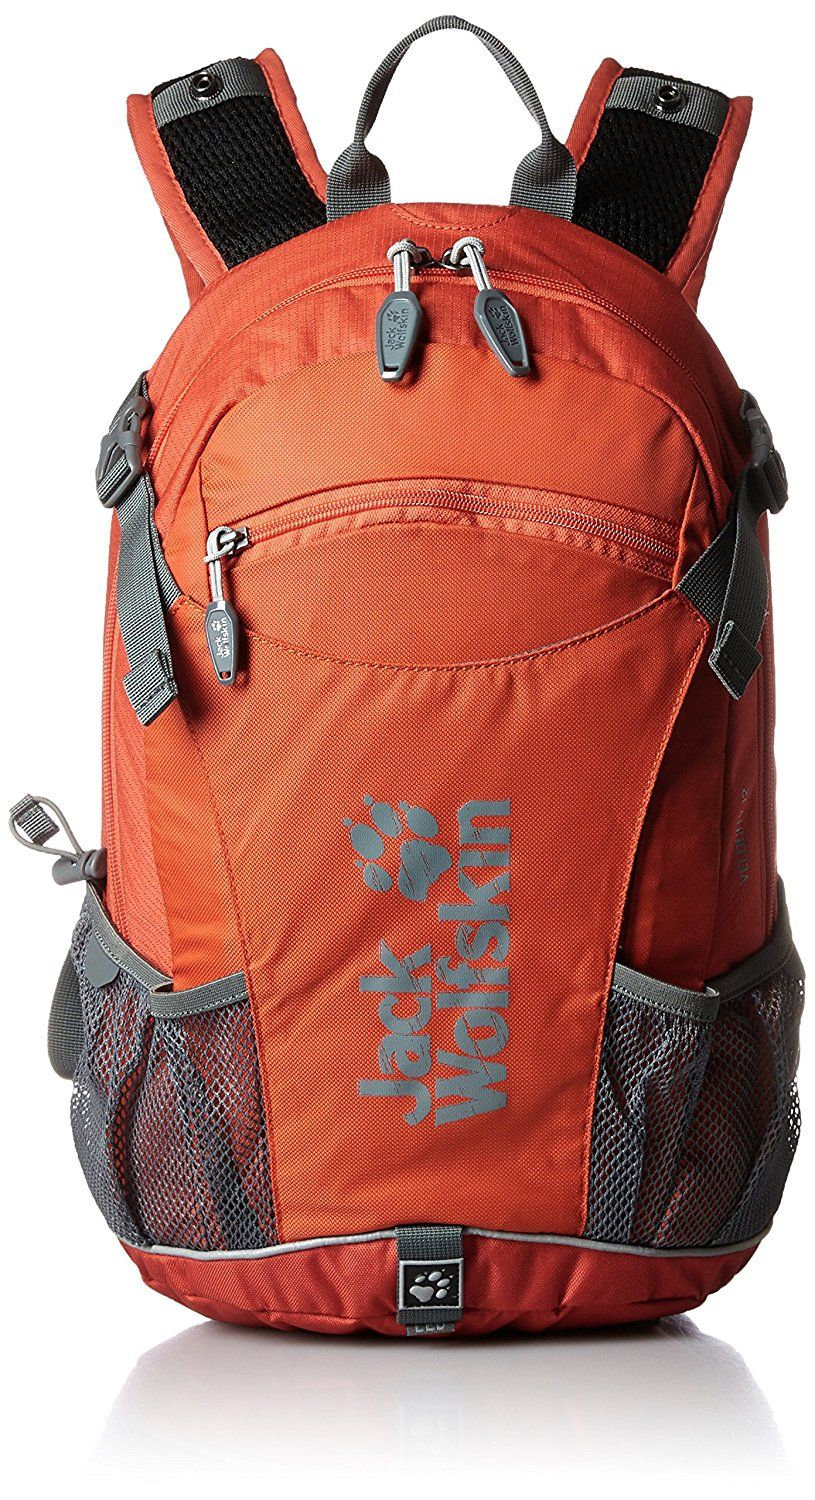 Jack Wolfskin ® Velocity 12 Lightweight Hiking Travel Outdoor Backpack [Deuter]